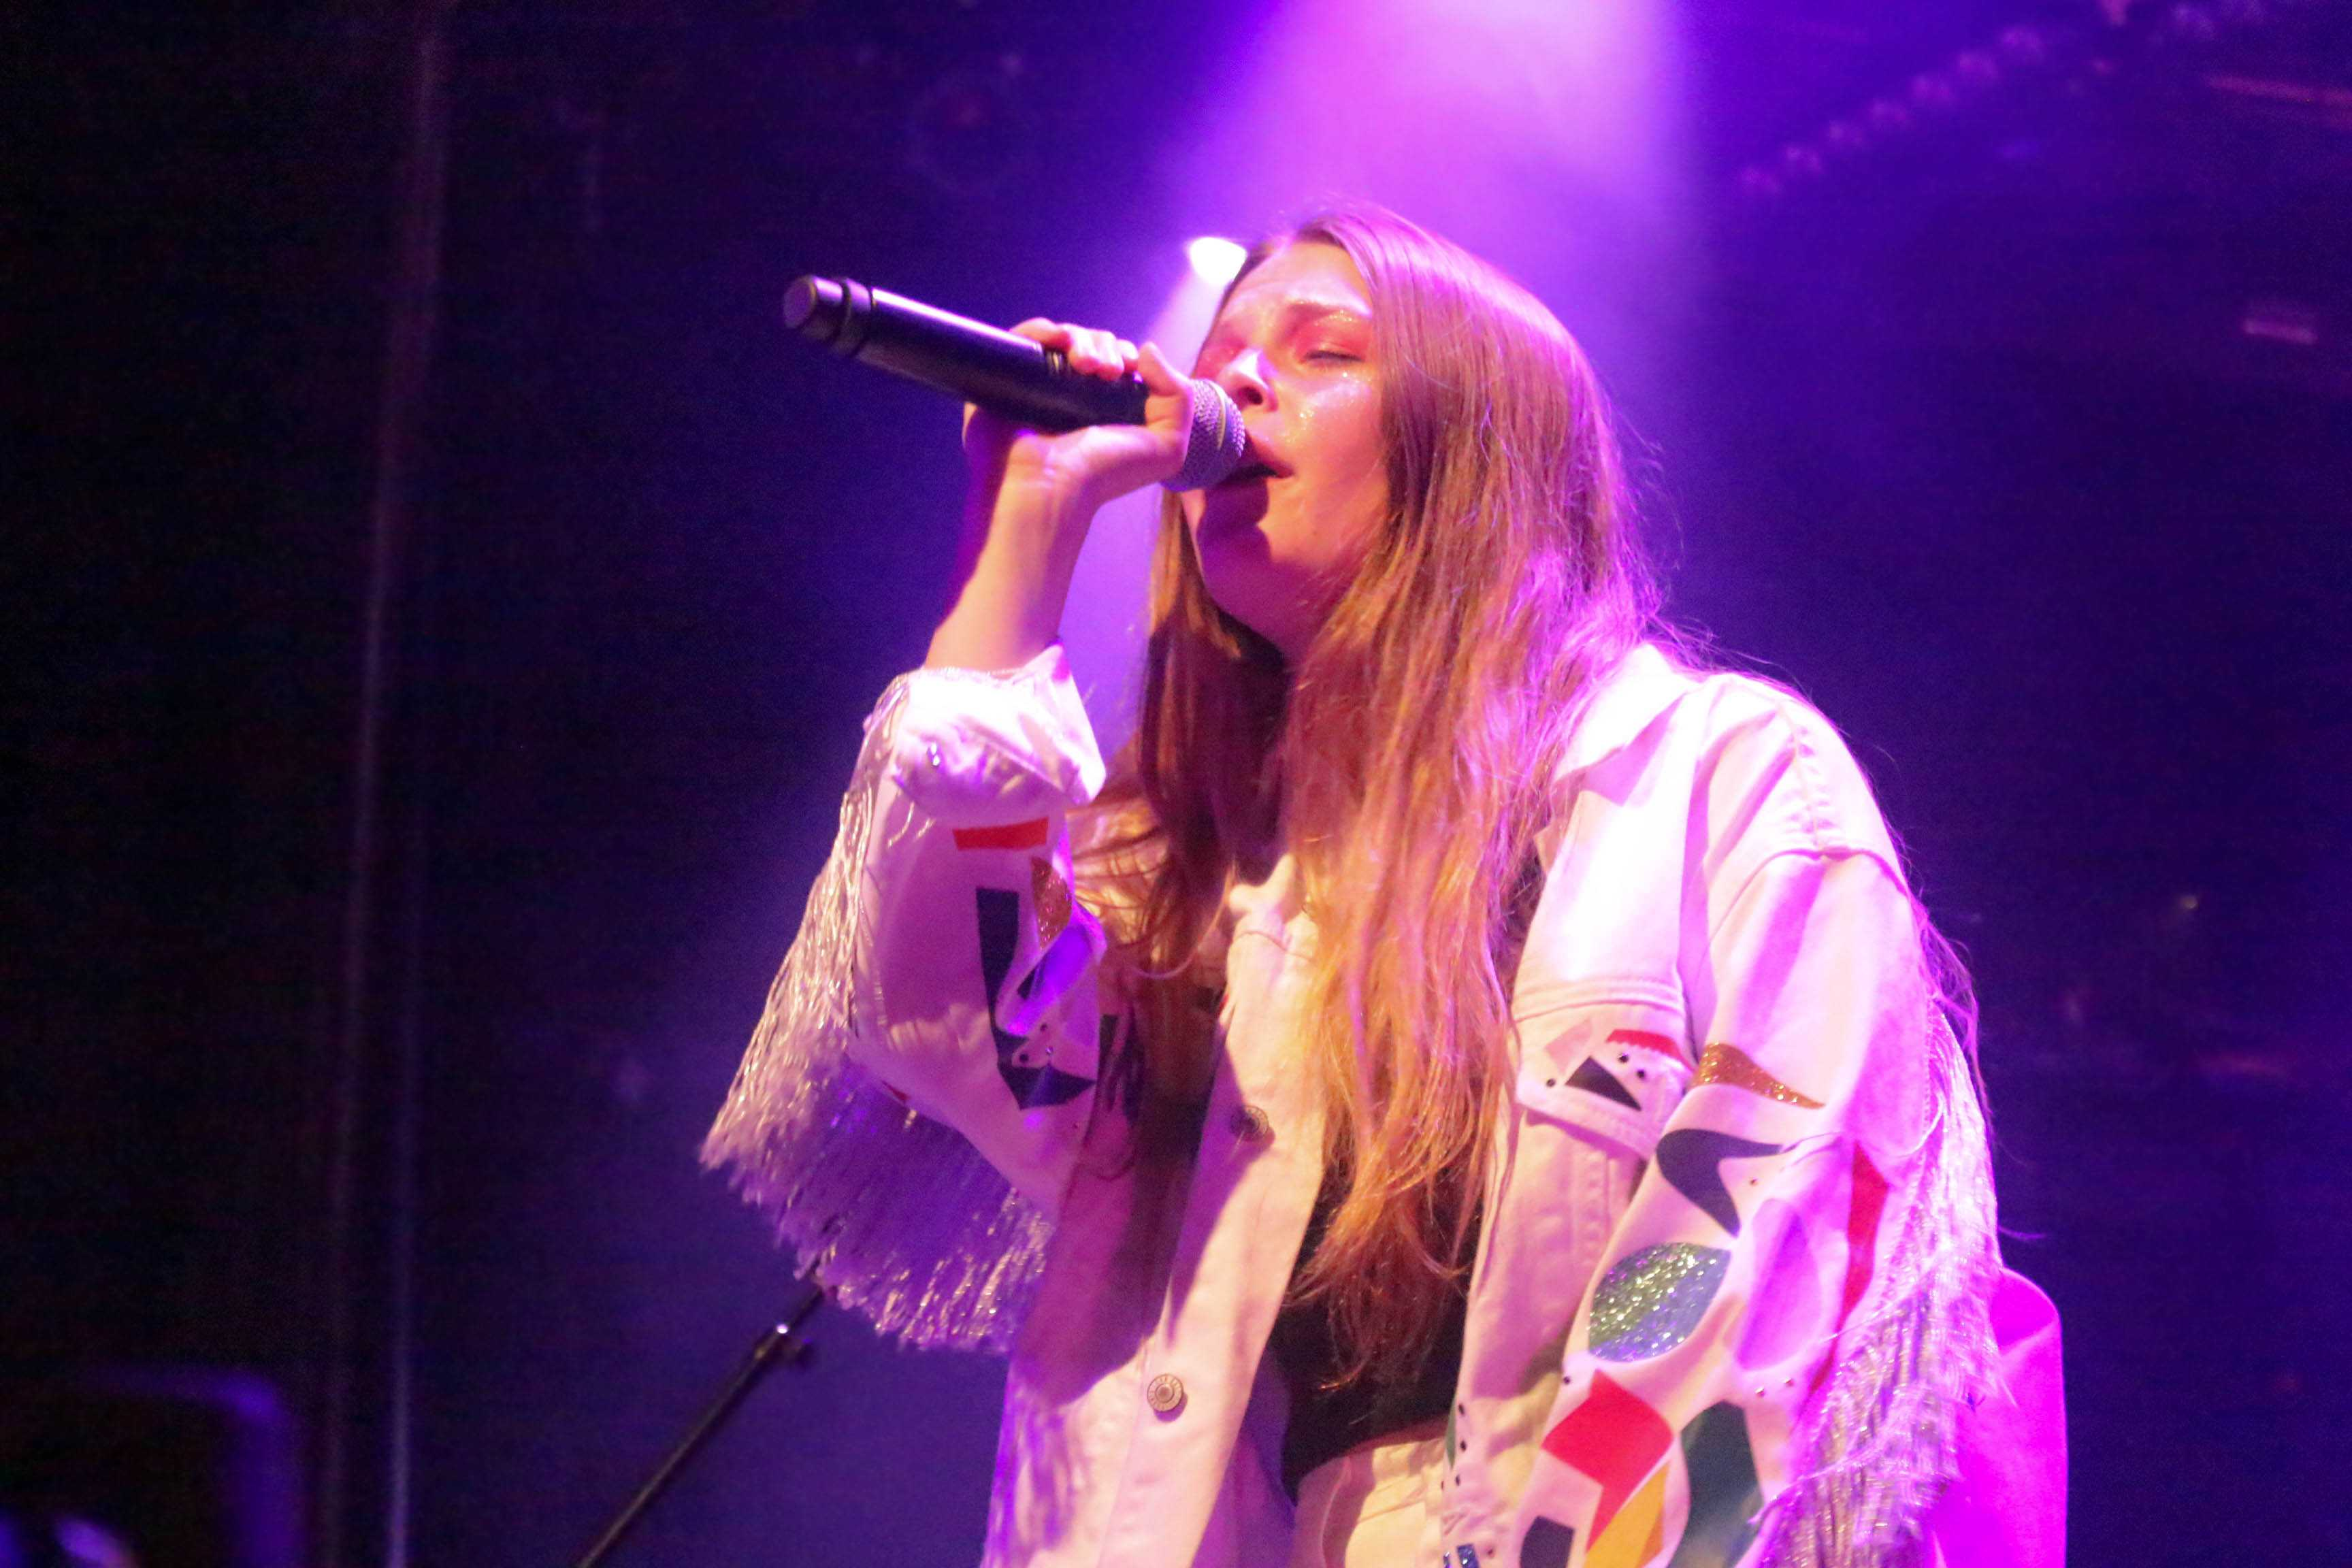 On April 11, Maggie Rogers performed at Bowery Ballroom, continuing her successful music career. She played her EP and several new songs, staying true to herself as an artist.